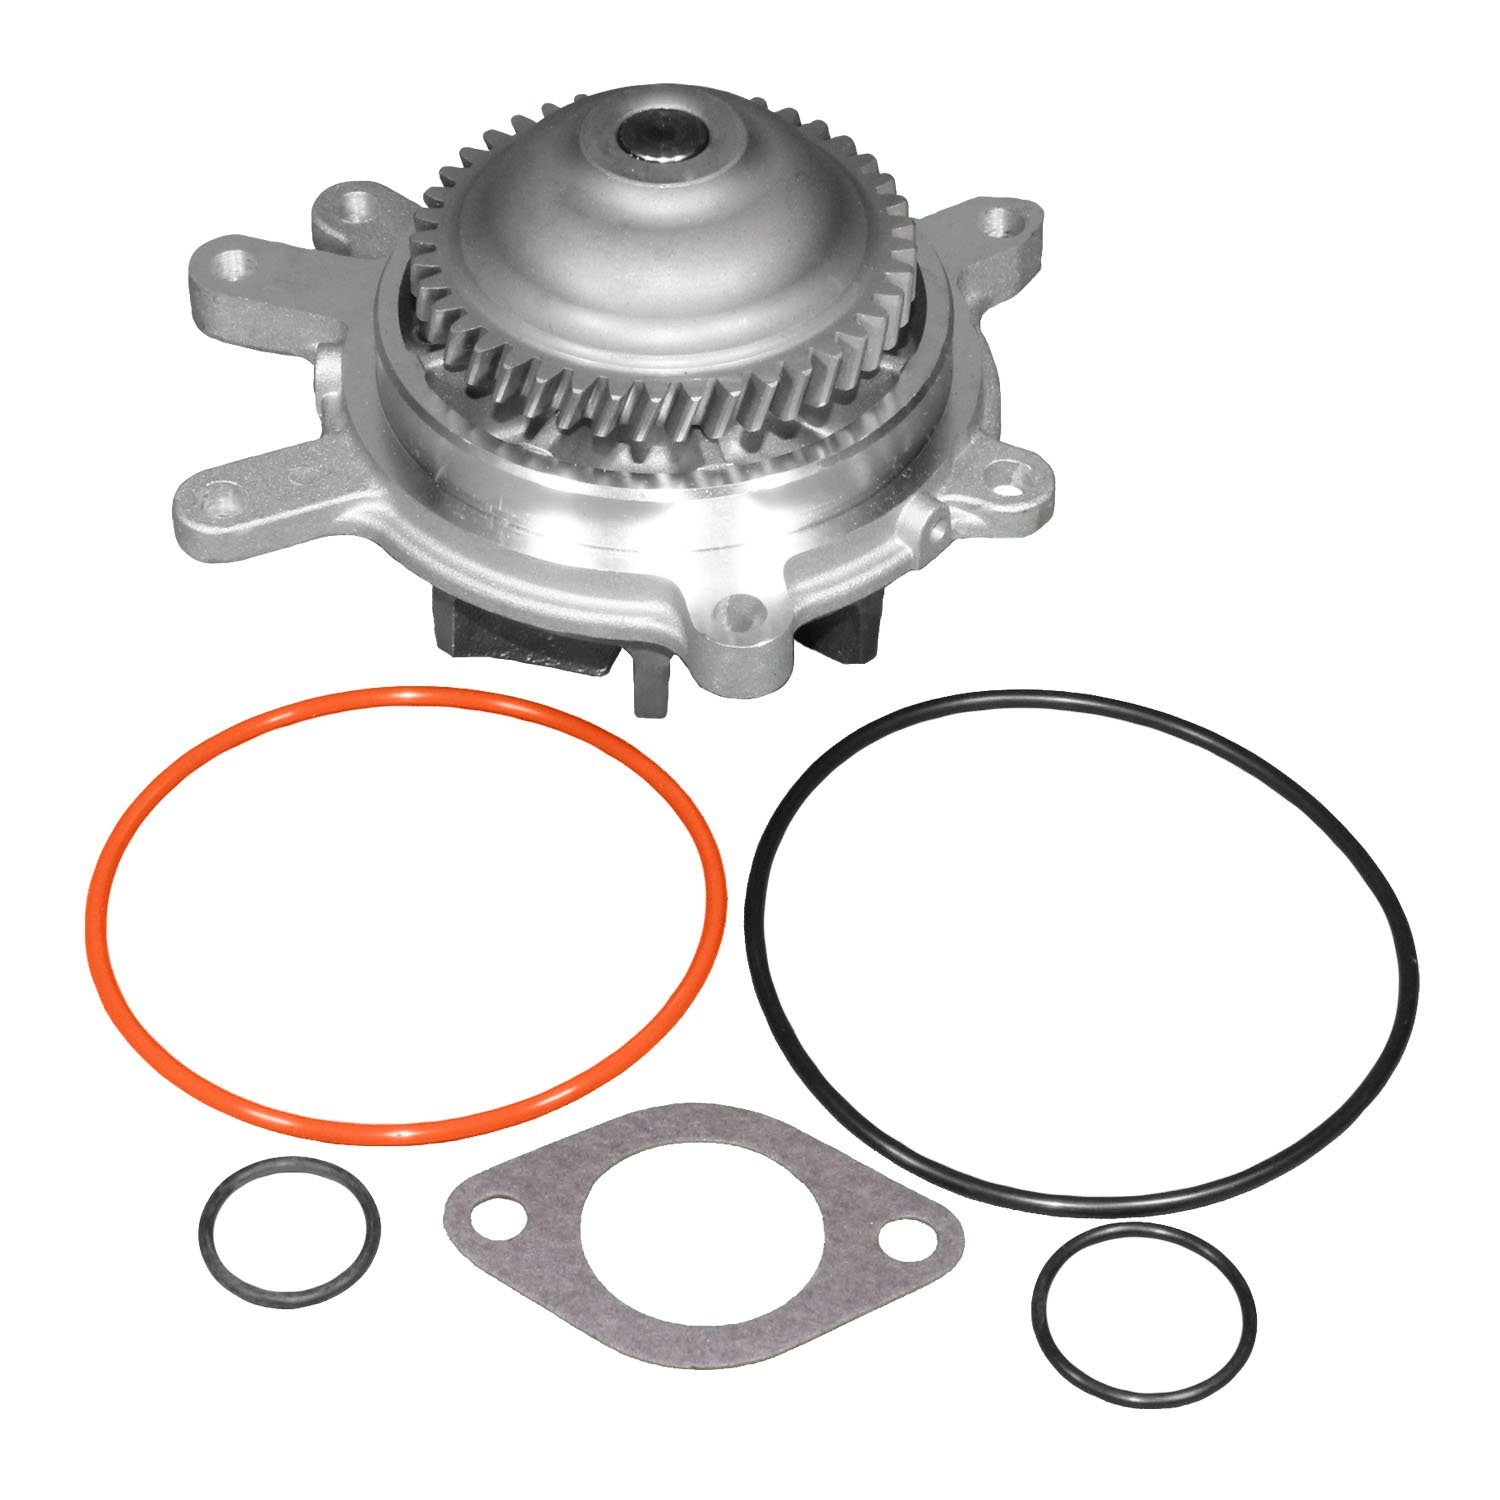 ACDelco 252-838 Professional Water Pump Kit by ACDelco